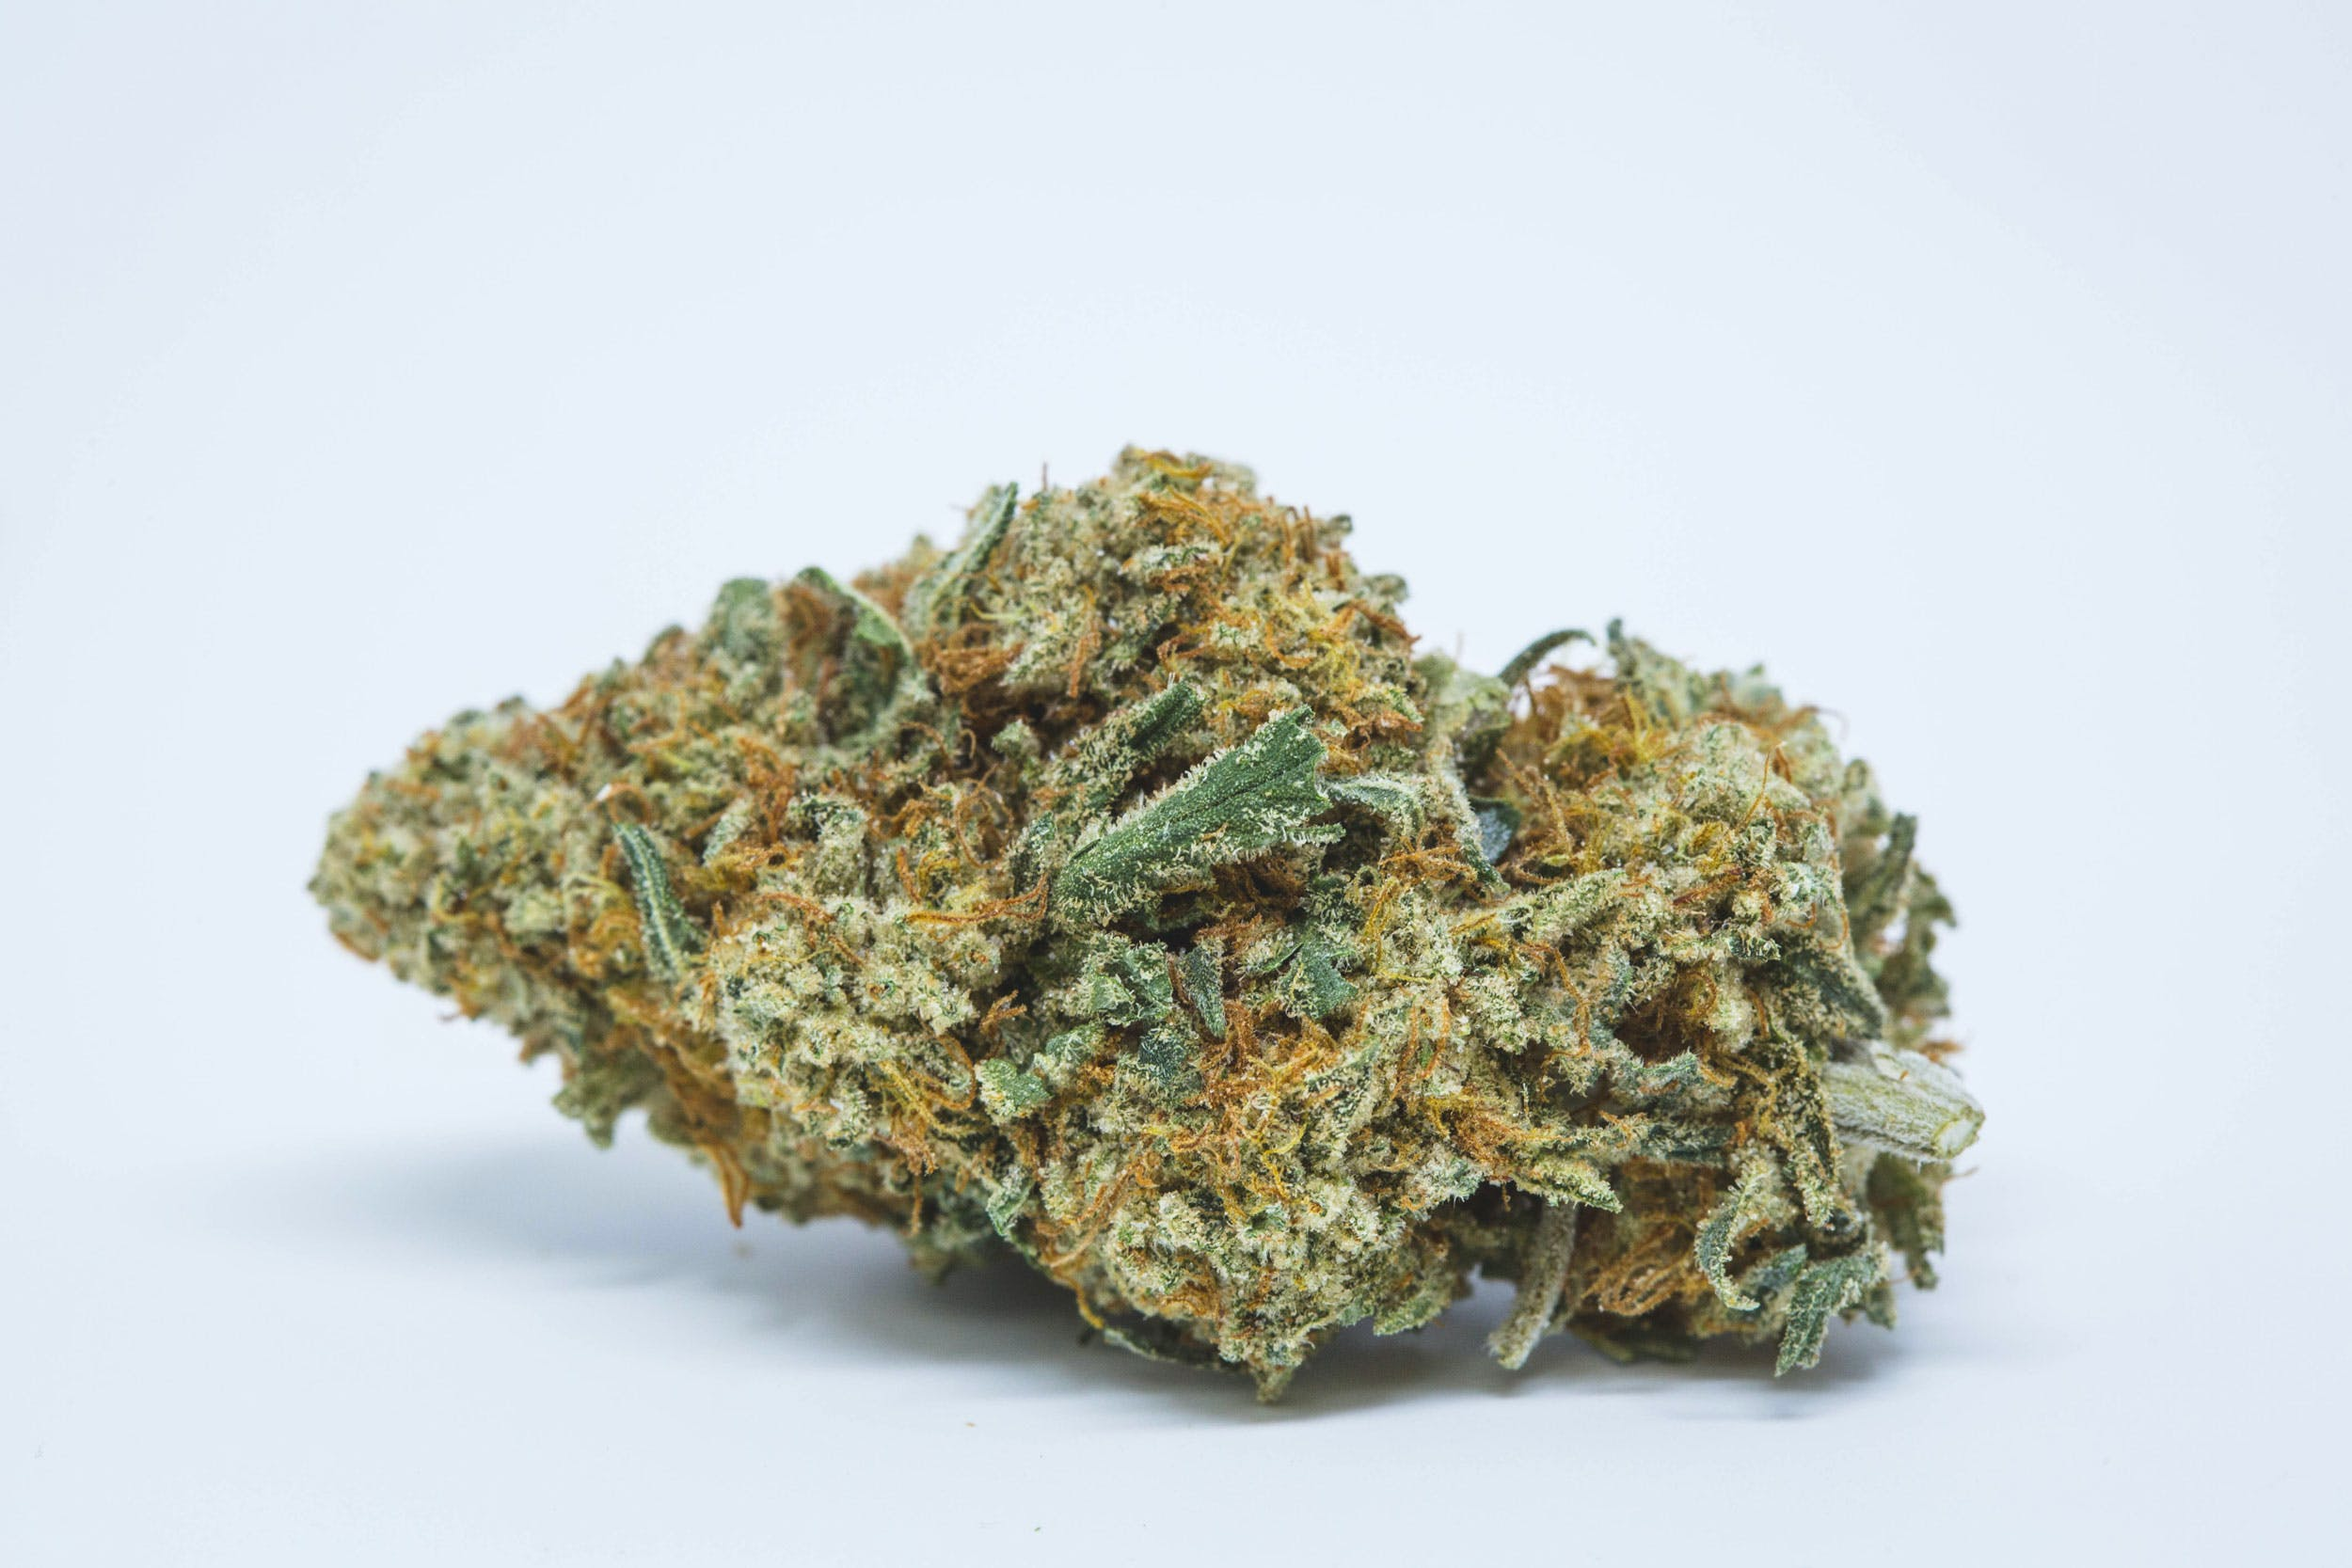 Golden Goat Weed; Golden Goat Cannabis Strain; Golden Goat Sativa Marijuana Strain